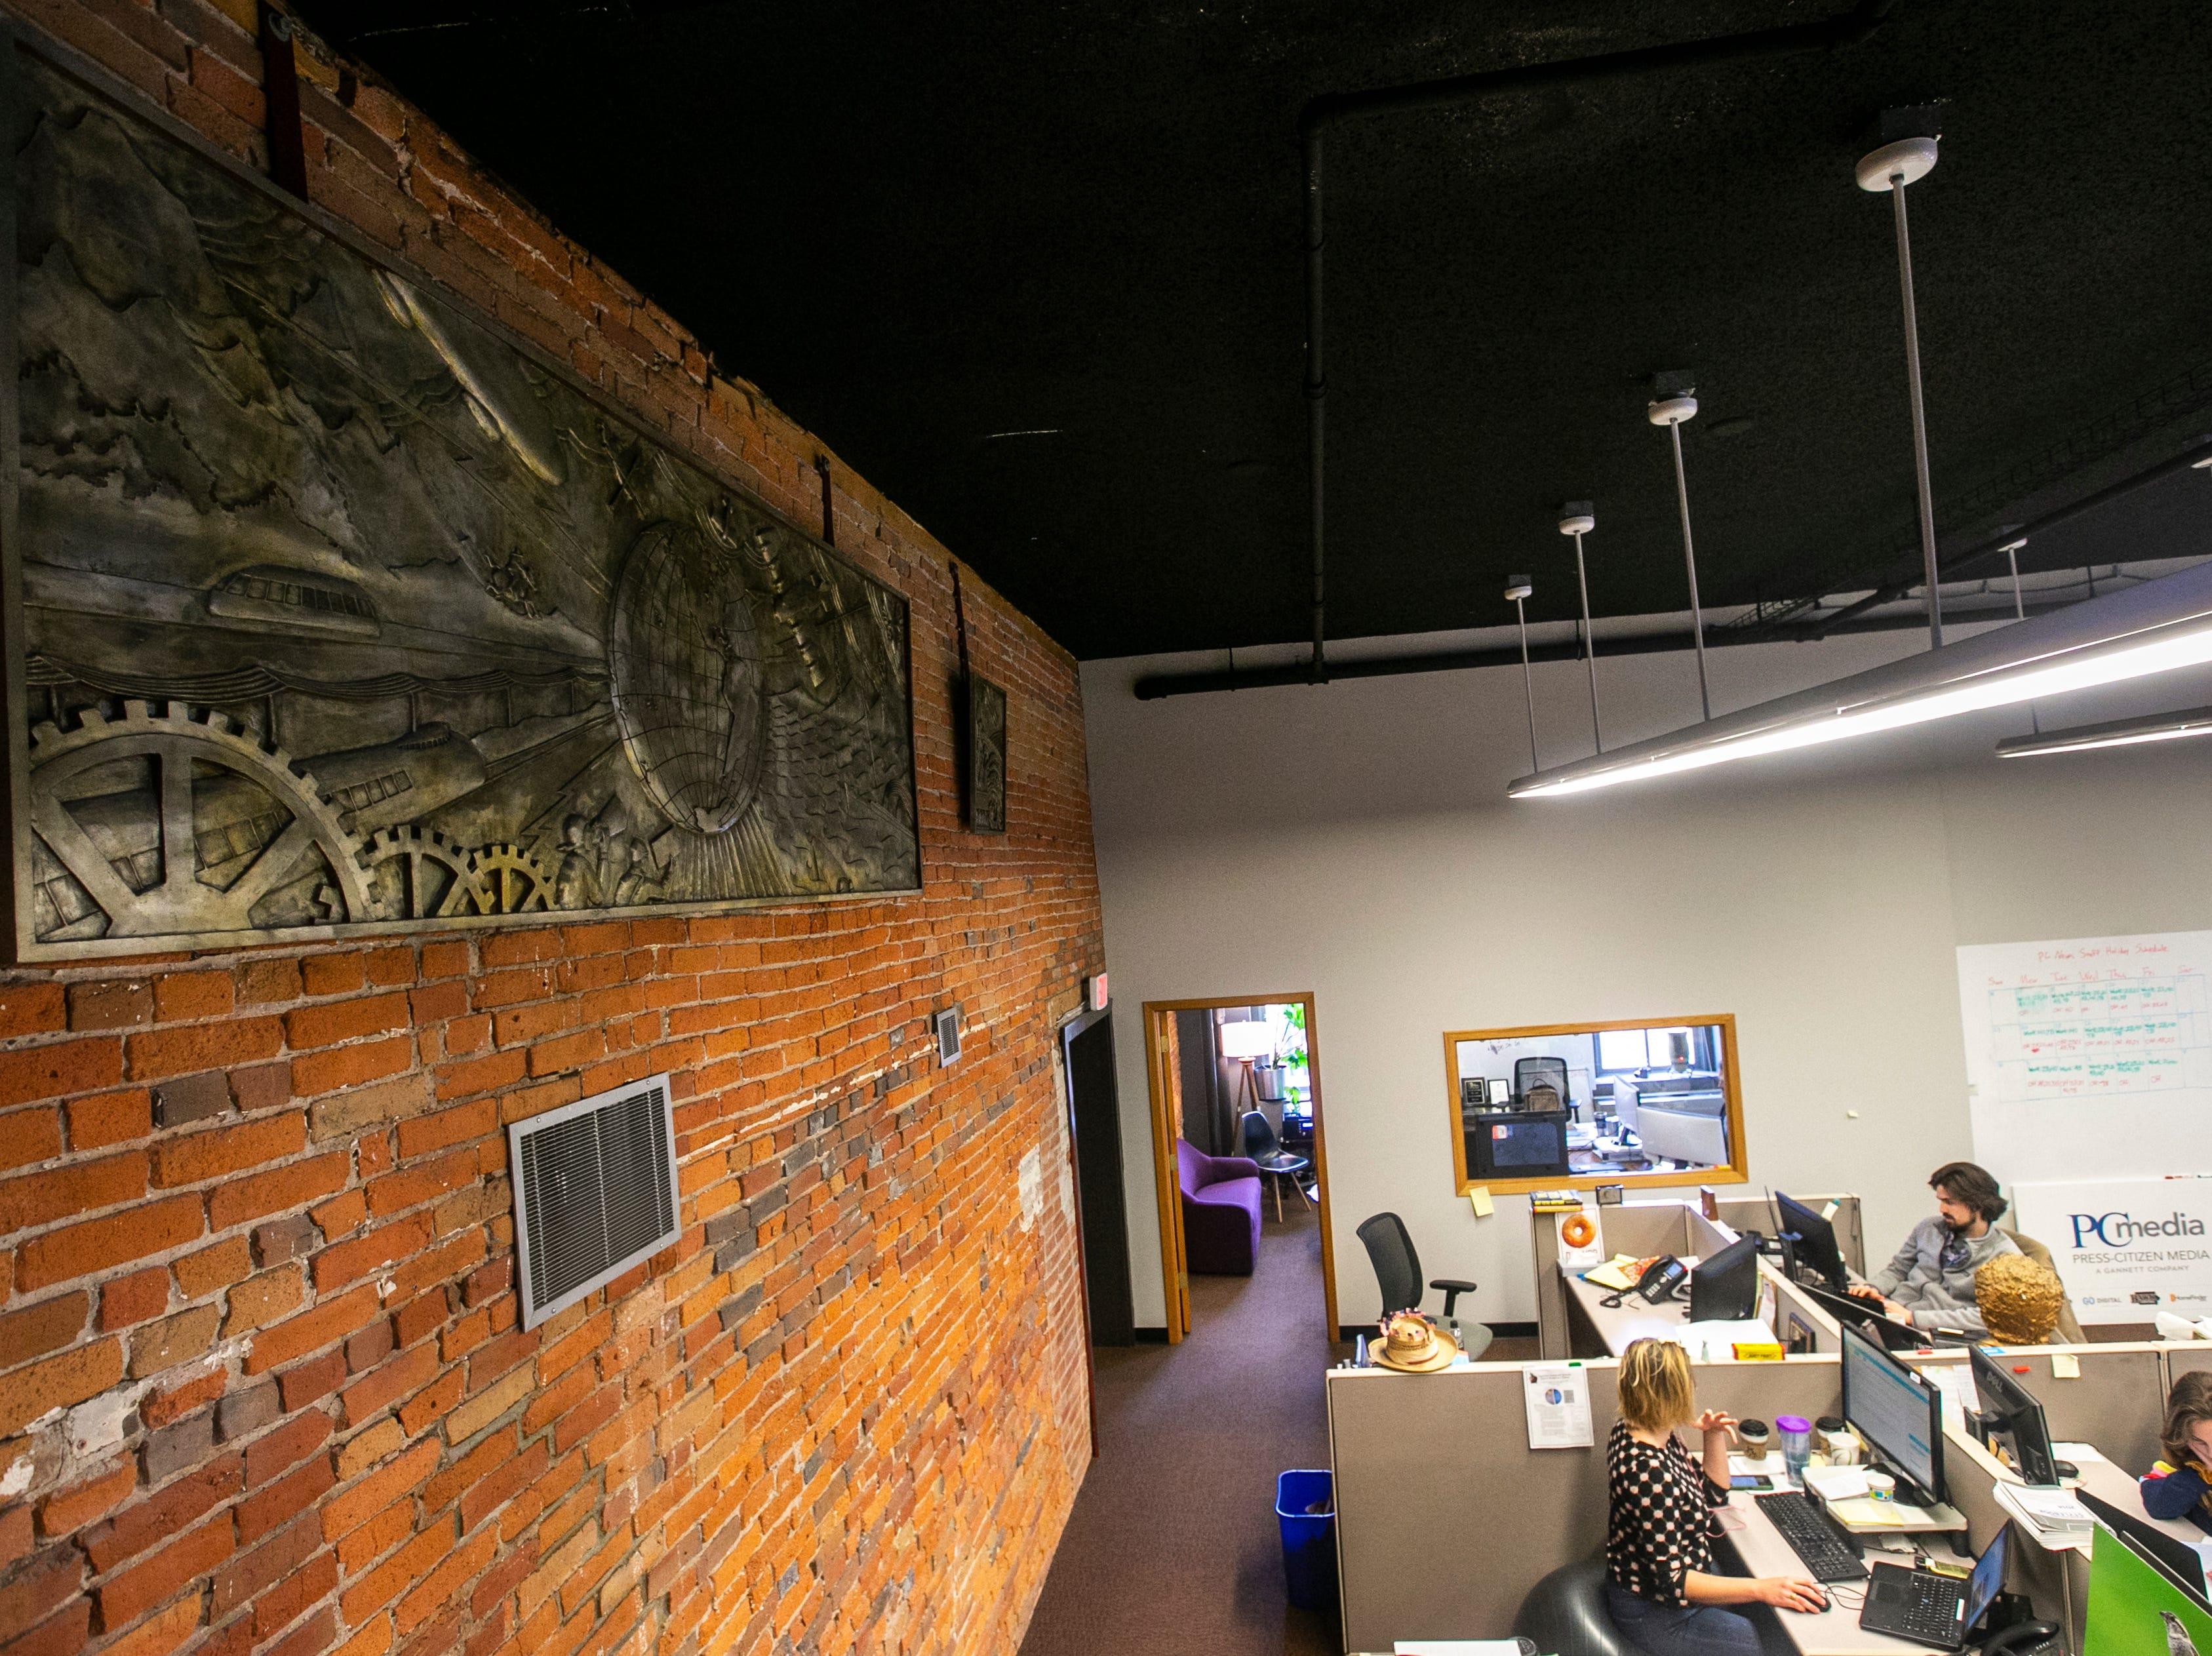 The original bas-relief cement molds from the old Iowa City Press-Citizen building on Washington Street hang in the current newsroom on Friday, Jan. 18, 2019, inside Brewery Square at 123 N. Linn Street in Iowa City, Iowa.